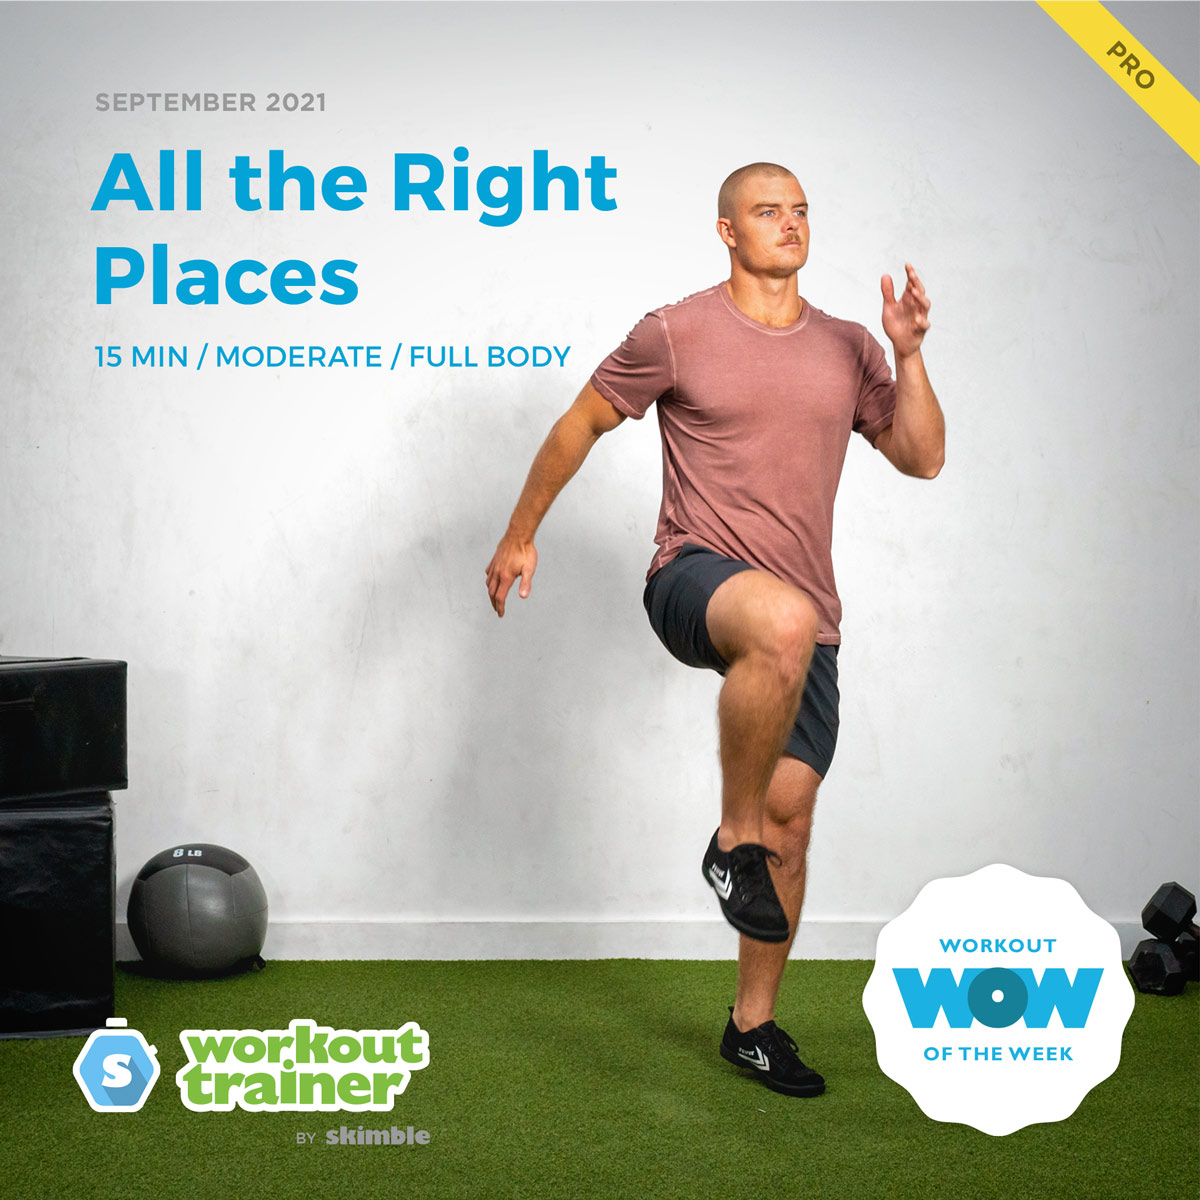 Male Personal Trainer is Skipping in Place